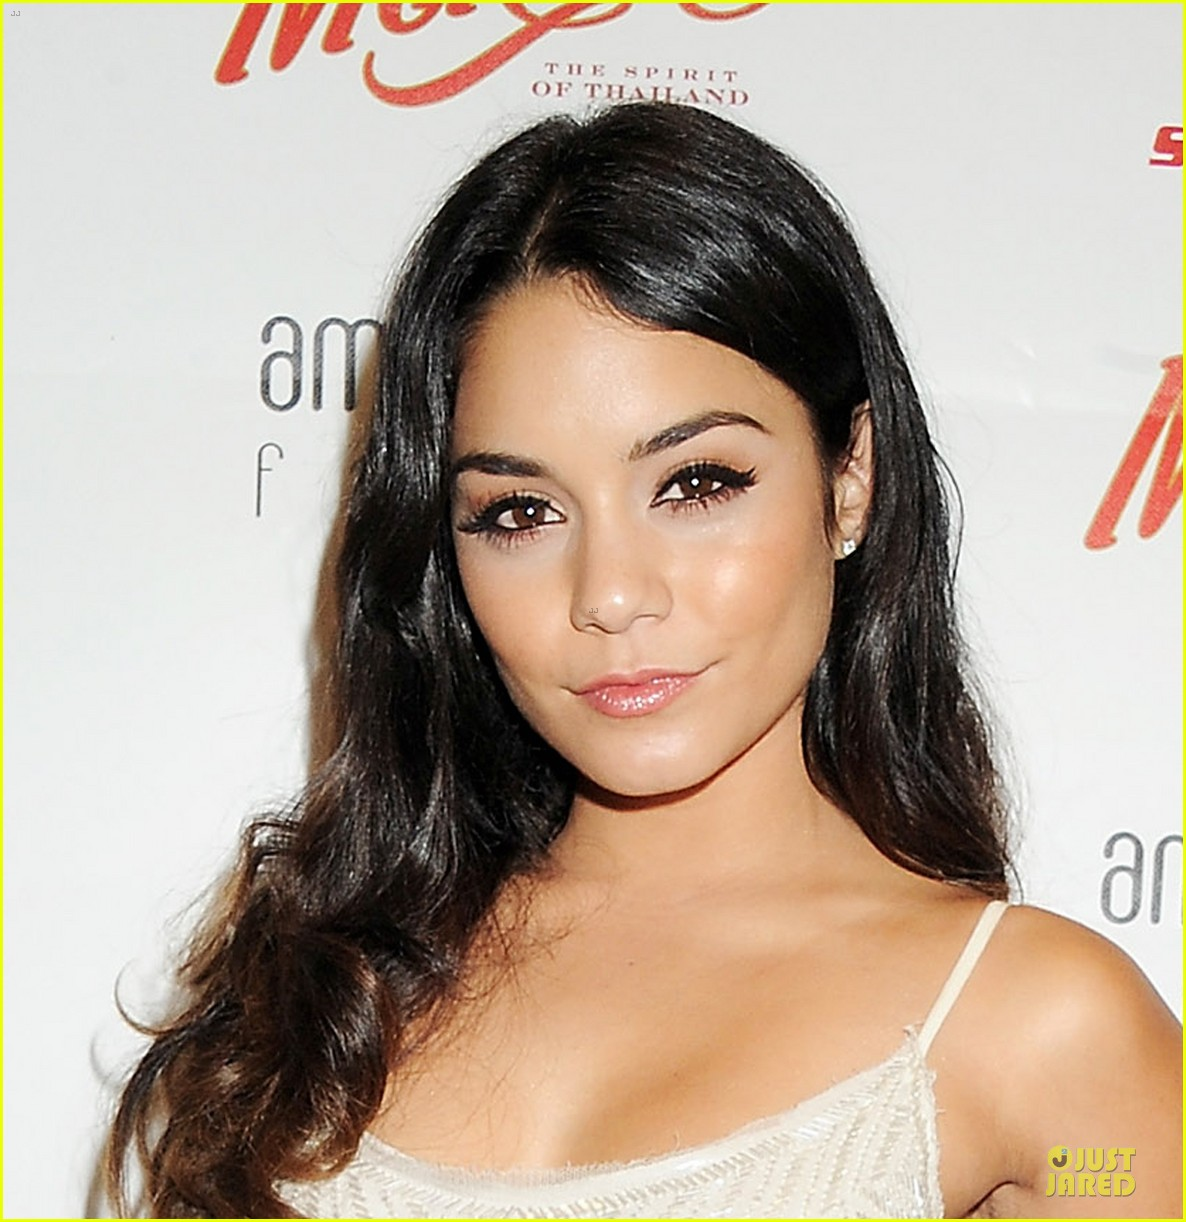 Actress Vanessa Hudgens - age: 28